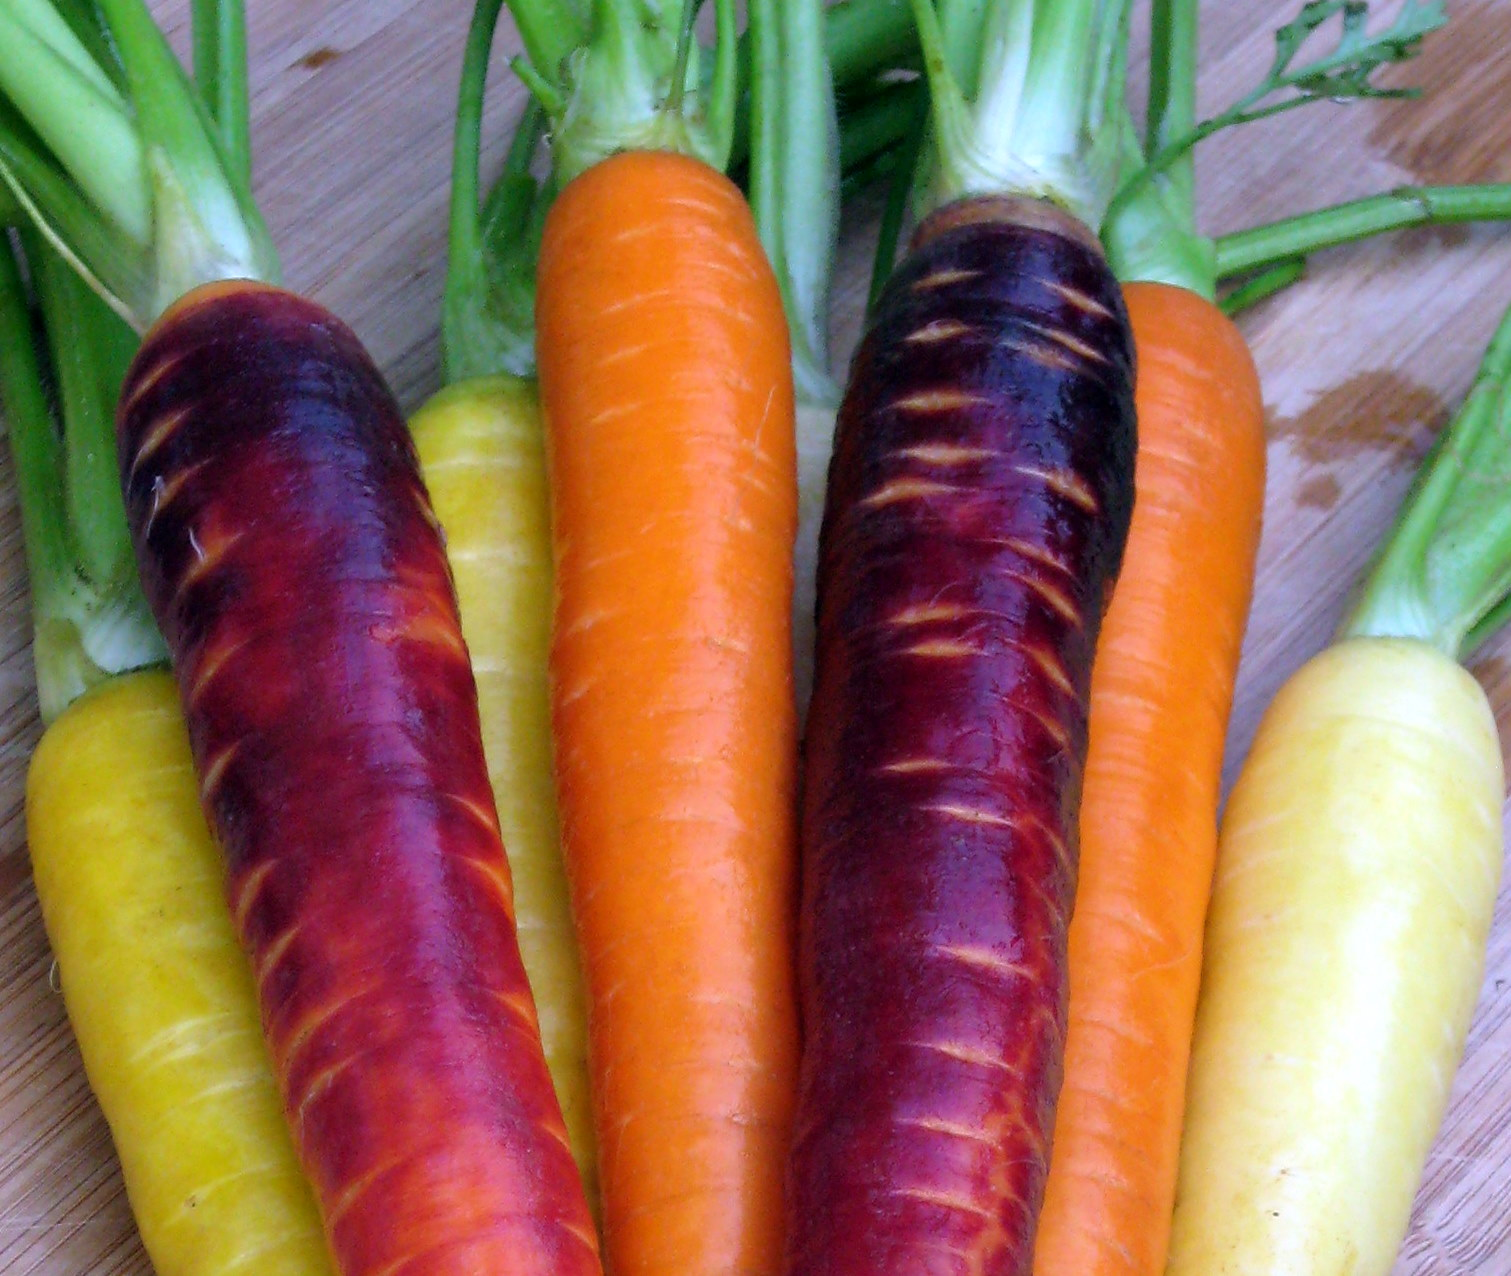 More Rainbow Carrots!